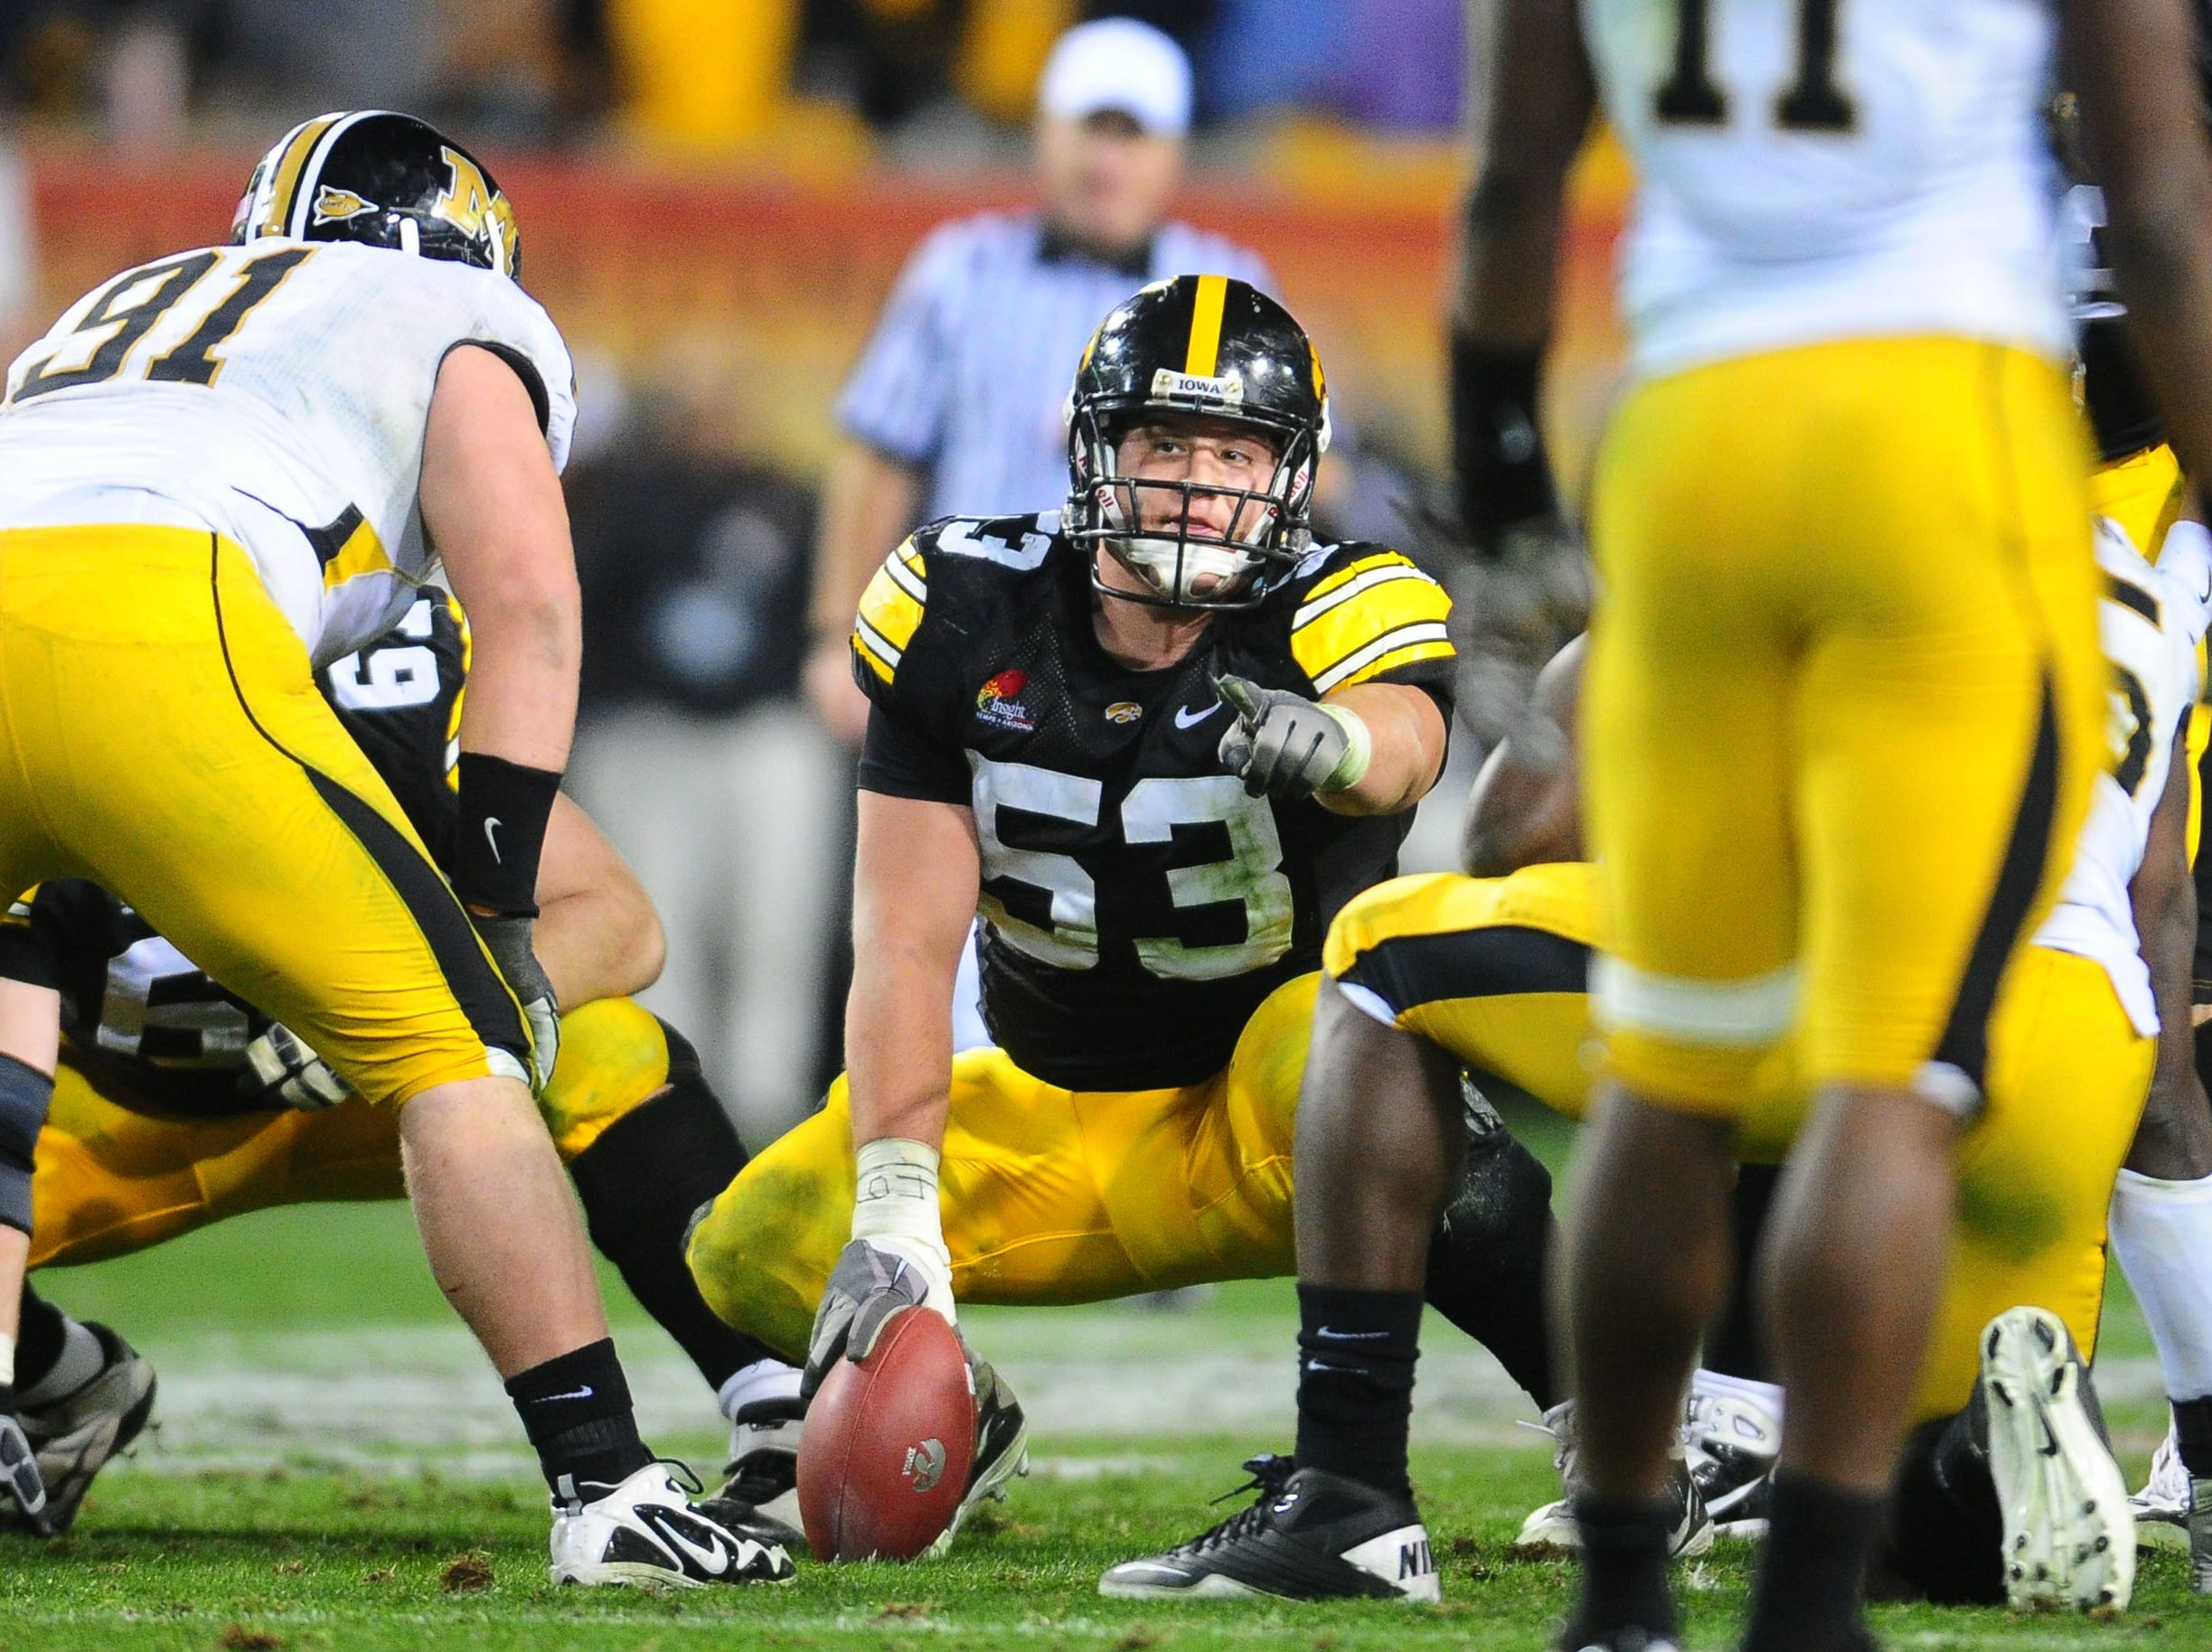 Dec. 28, 2010; Tempe, AZ, USA; Iowa Hawkeyes offensive lineman (53) James Ferentz against the Missouri Tigers in the 2010 Insight Bowl at Sun Devil Stadium. Iowa defeated Missouri 27-24. Mandatory Credit: Mark J. Rebilas-USA TODAY Sports